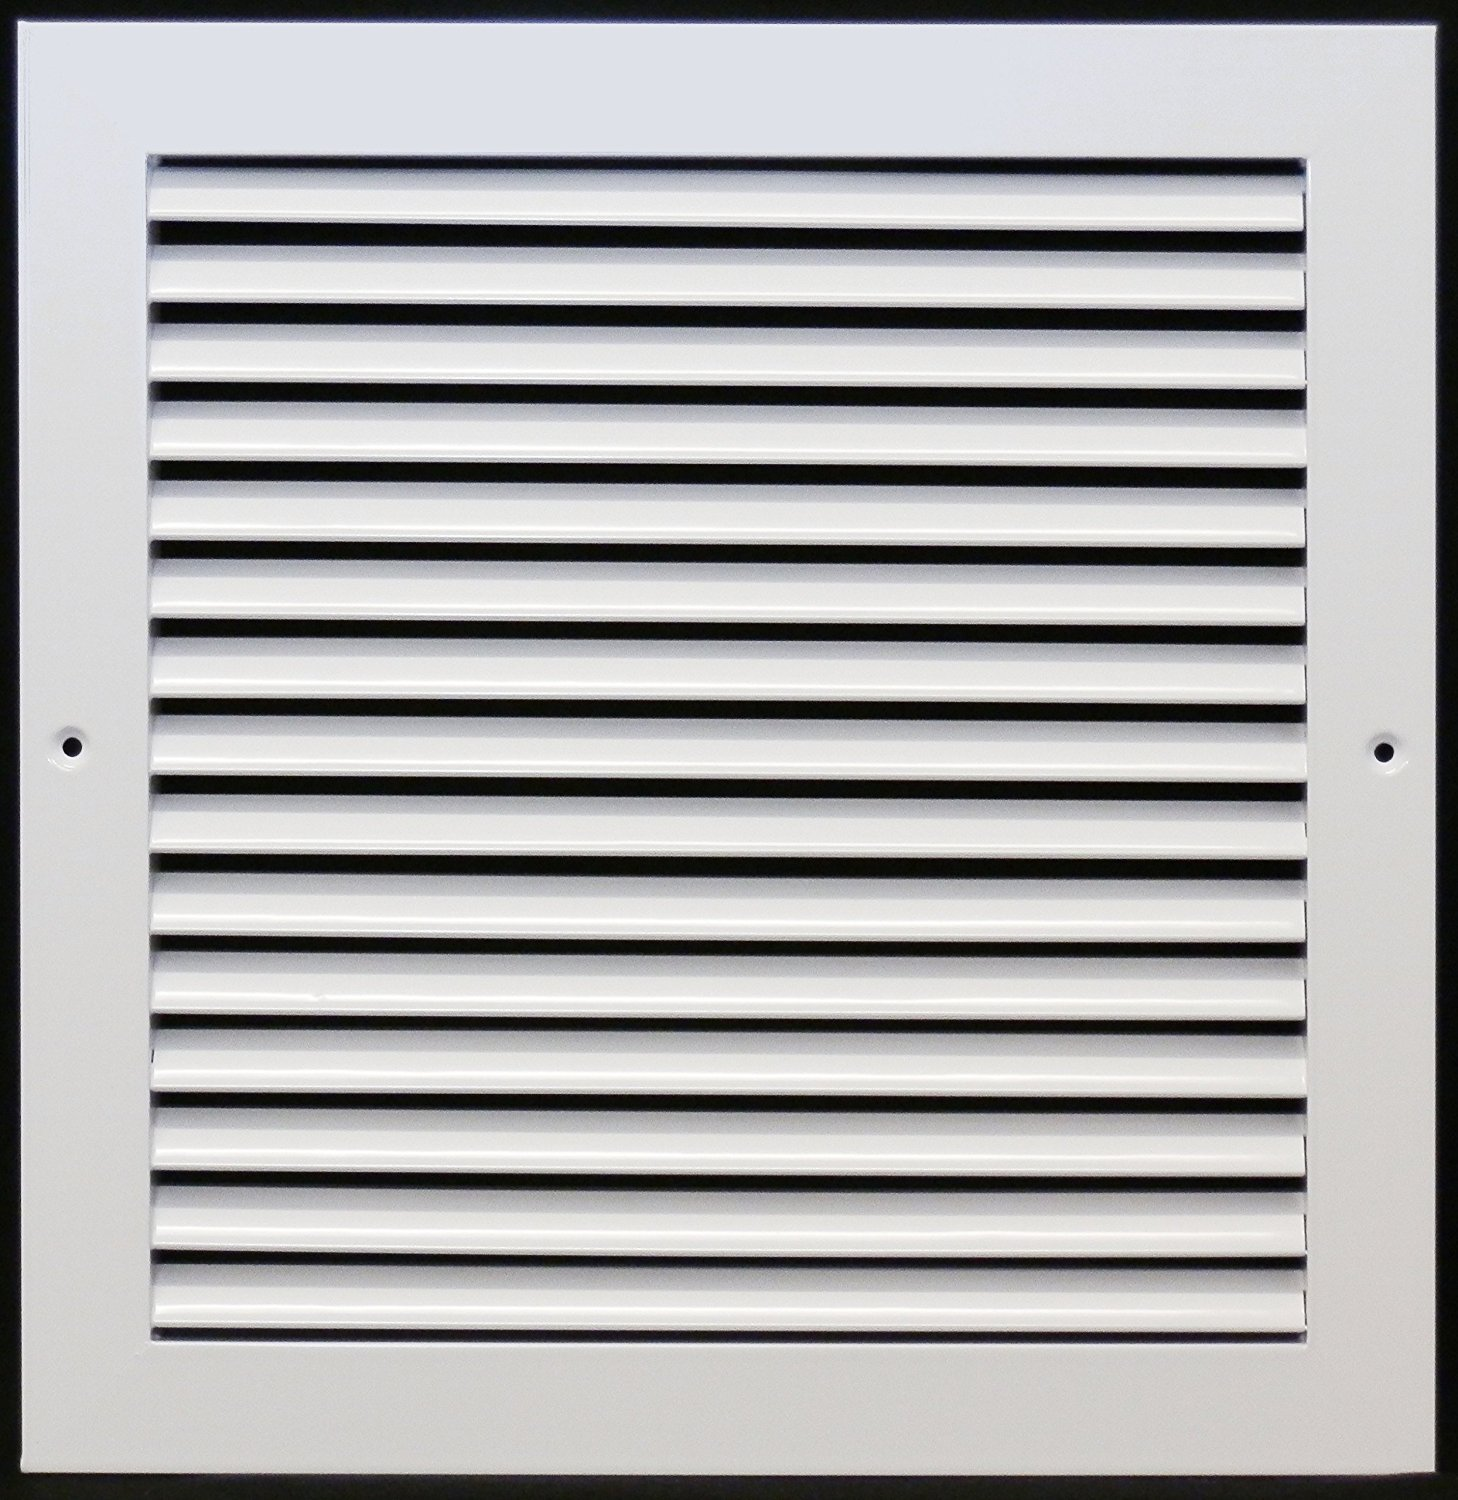 12'' x 12'' Aluminum Return Grille - Easy Air FLow - Linear Bar Grilles [Outer Dimensions: 13.75''w X 13.75''h]